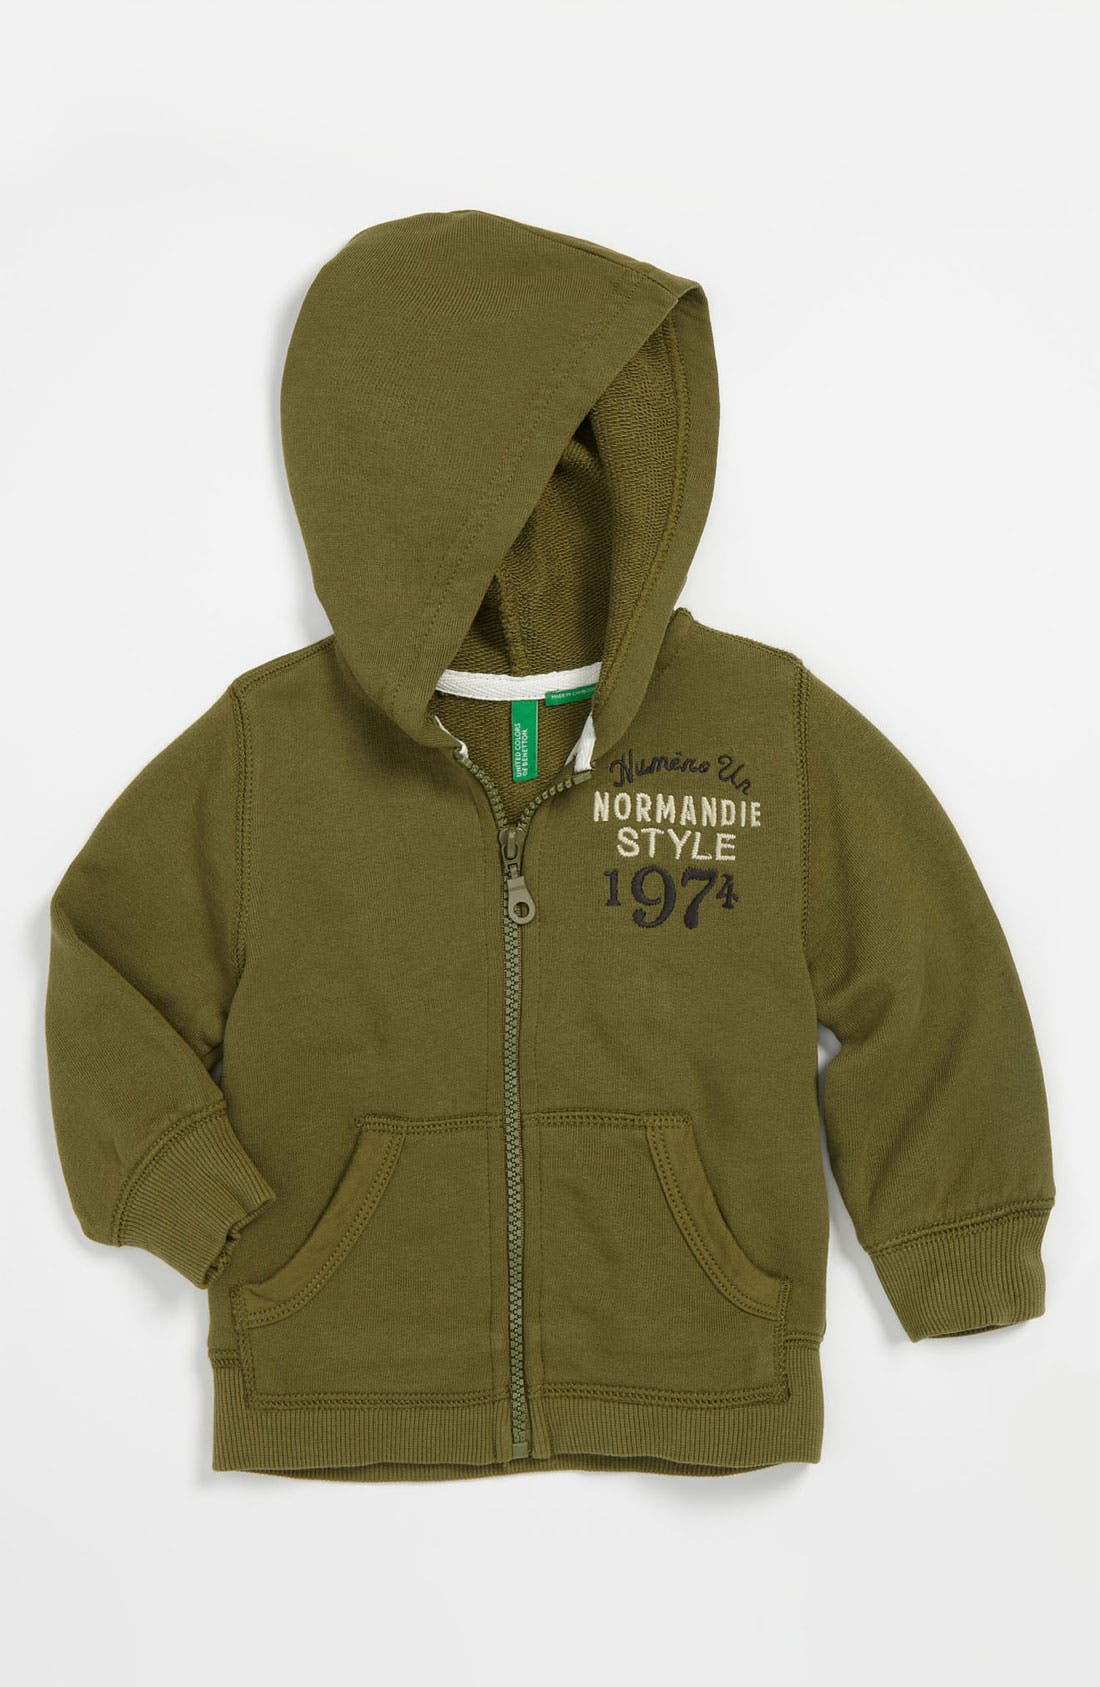 Main Image - United Colors of Benetton Kids 'Normandie' Hoodie (Toddler)